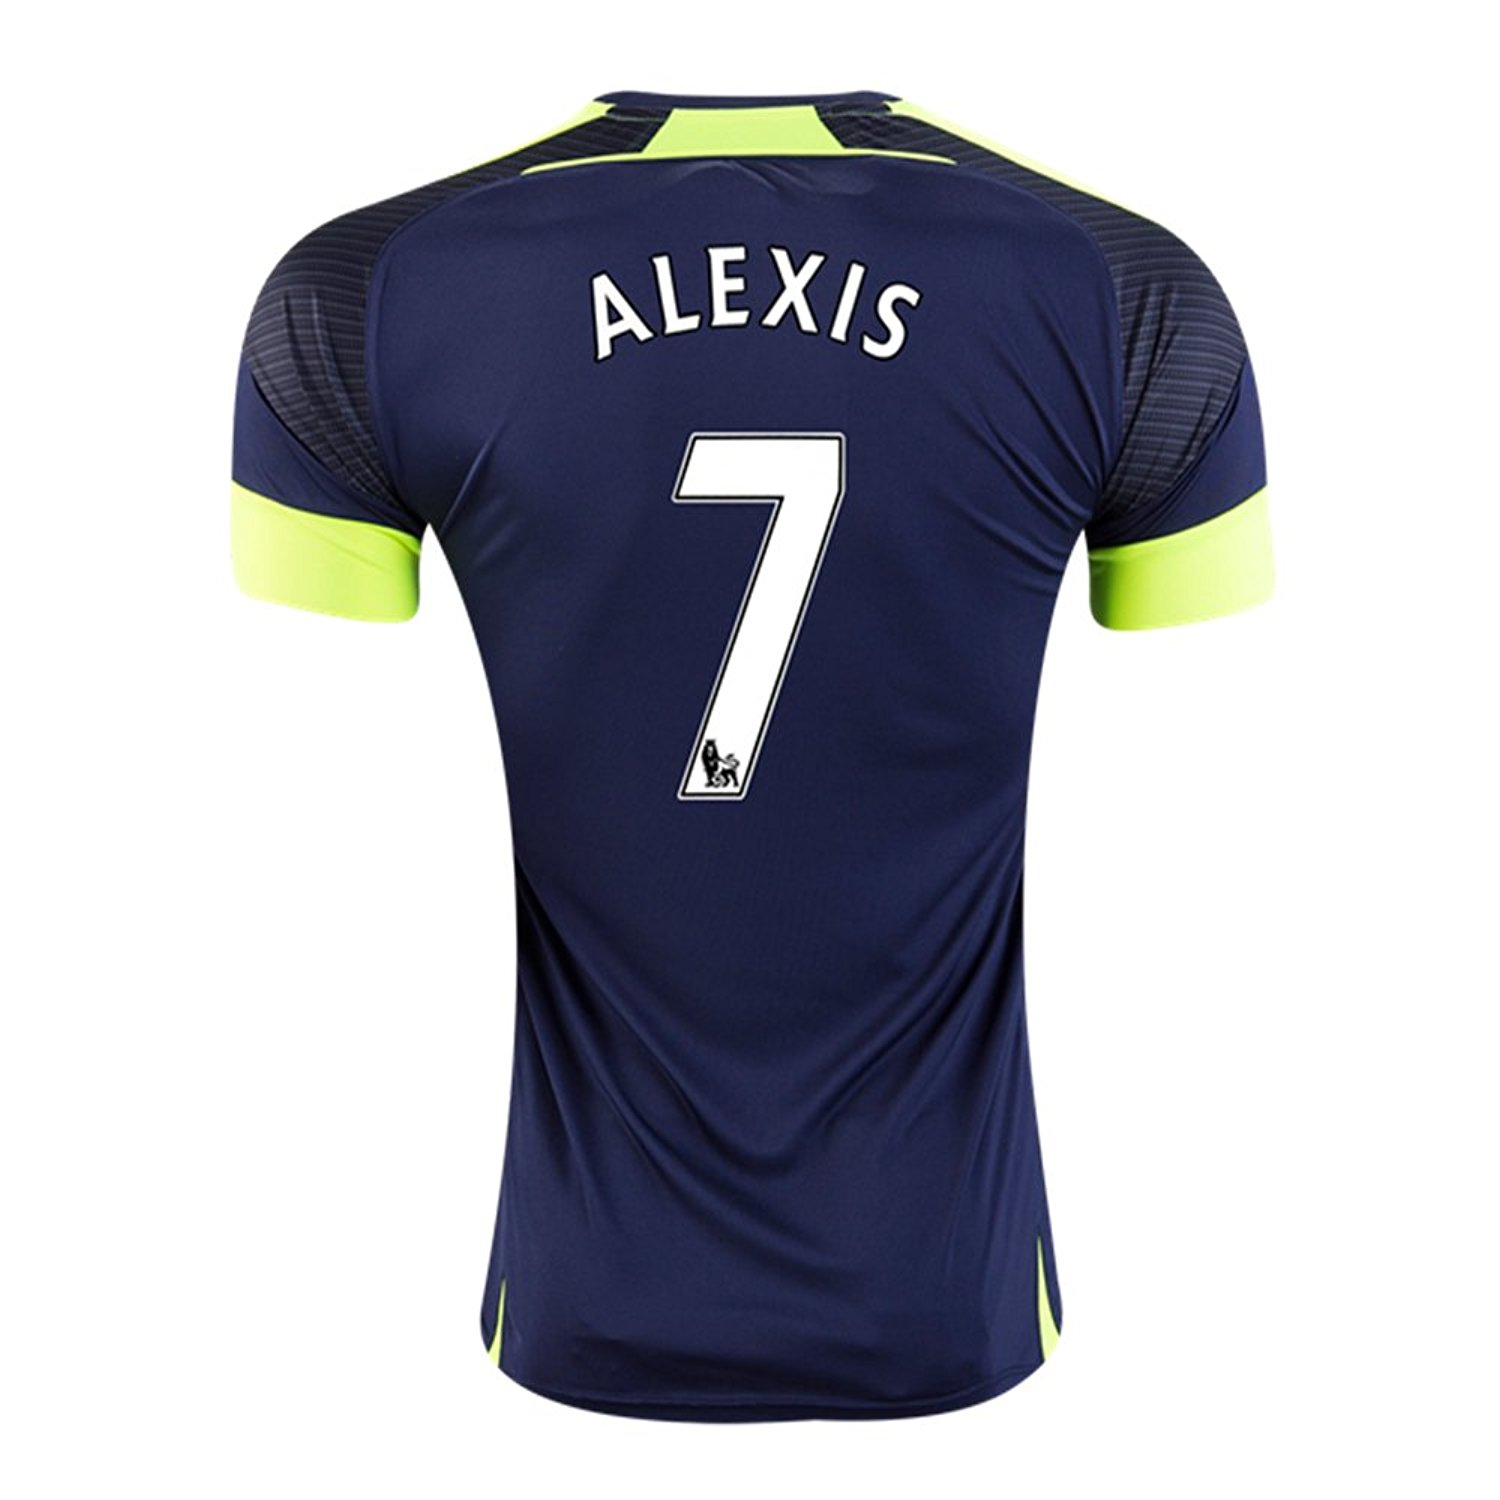 Puma Mens Alexis #7 Official Arsenal 2016/17 Third Soccer Jersey